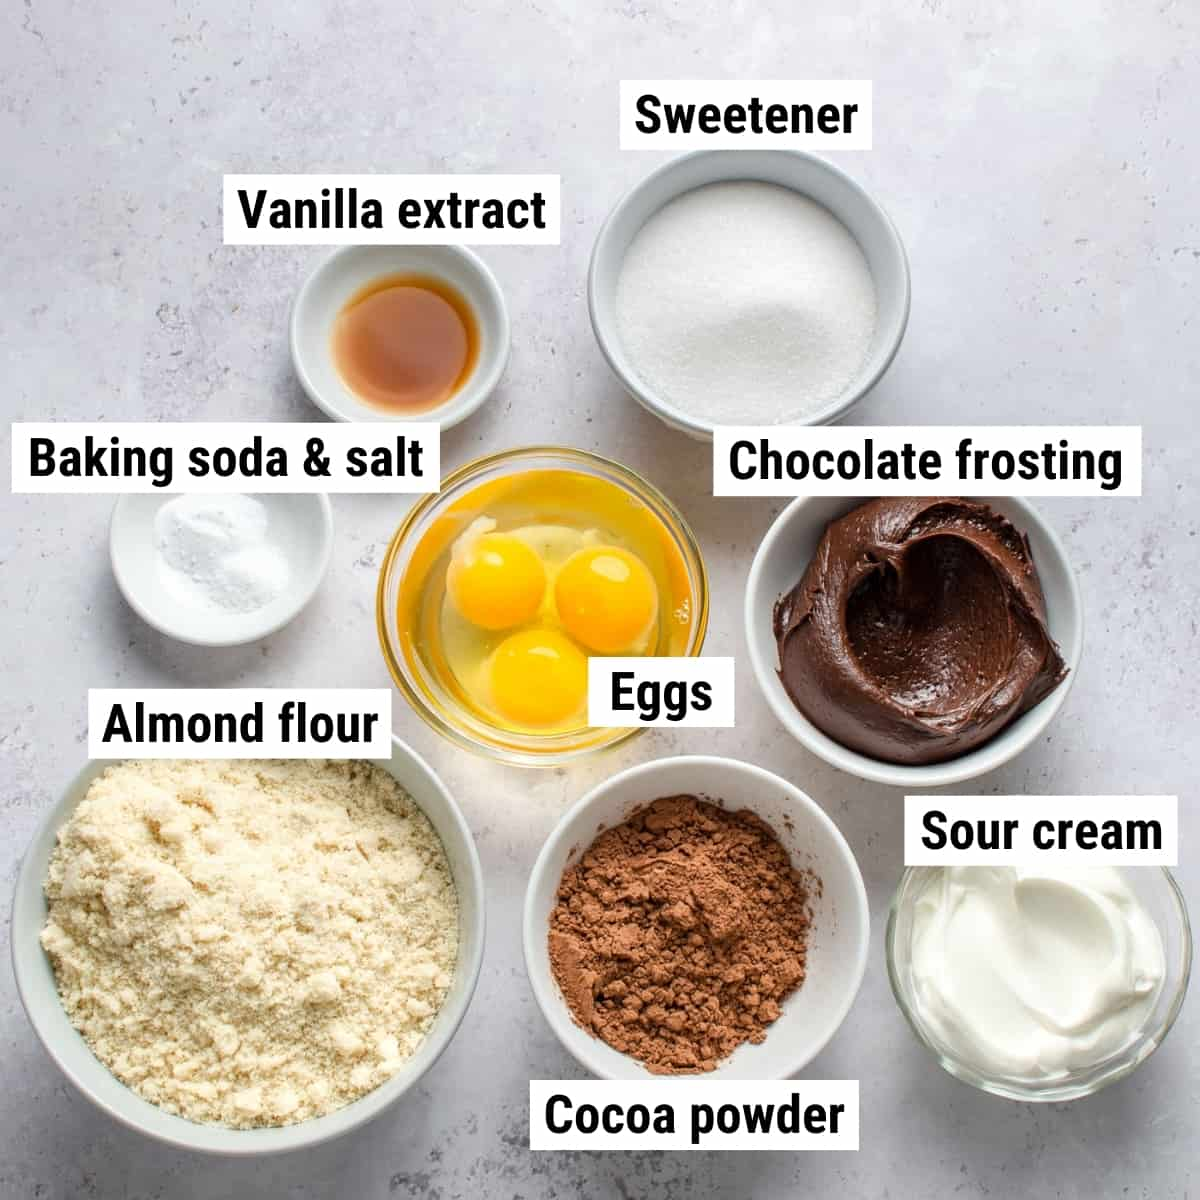 The ingredients used to make almond flour cupcakes.